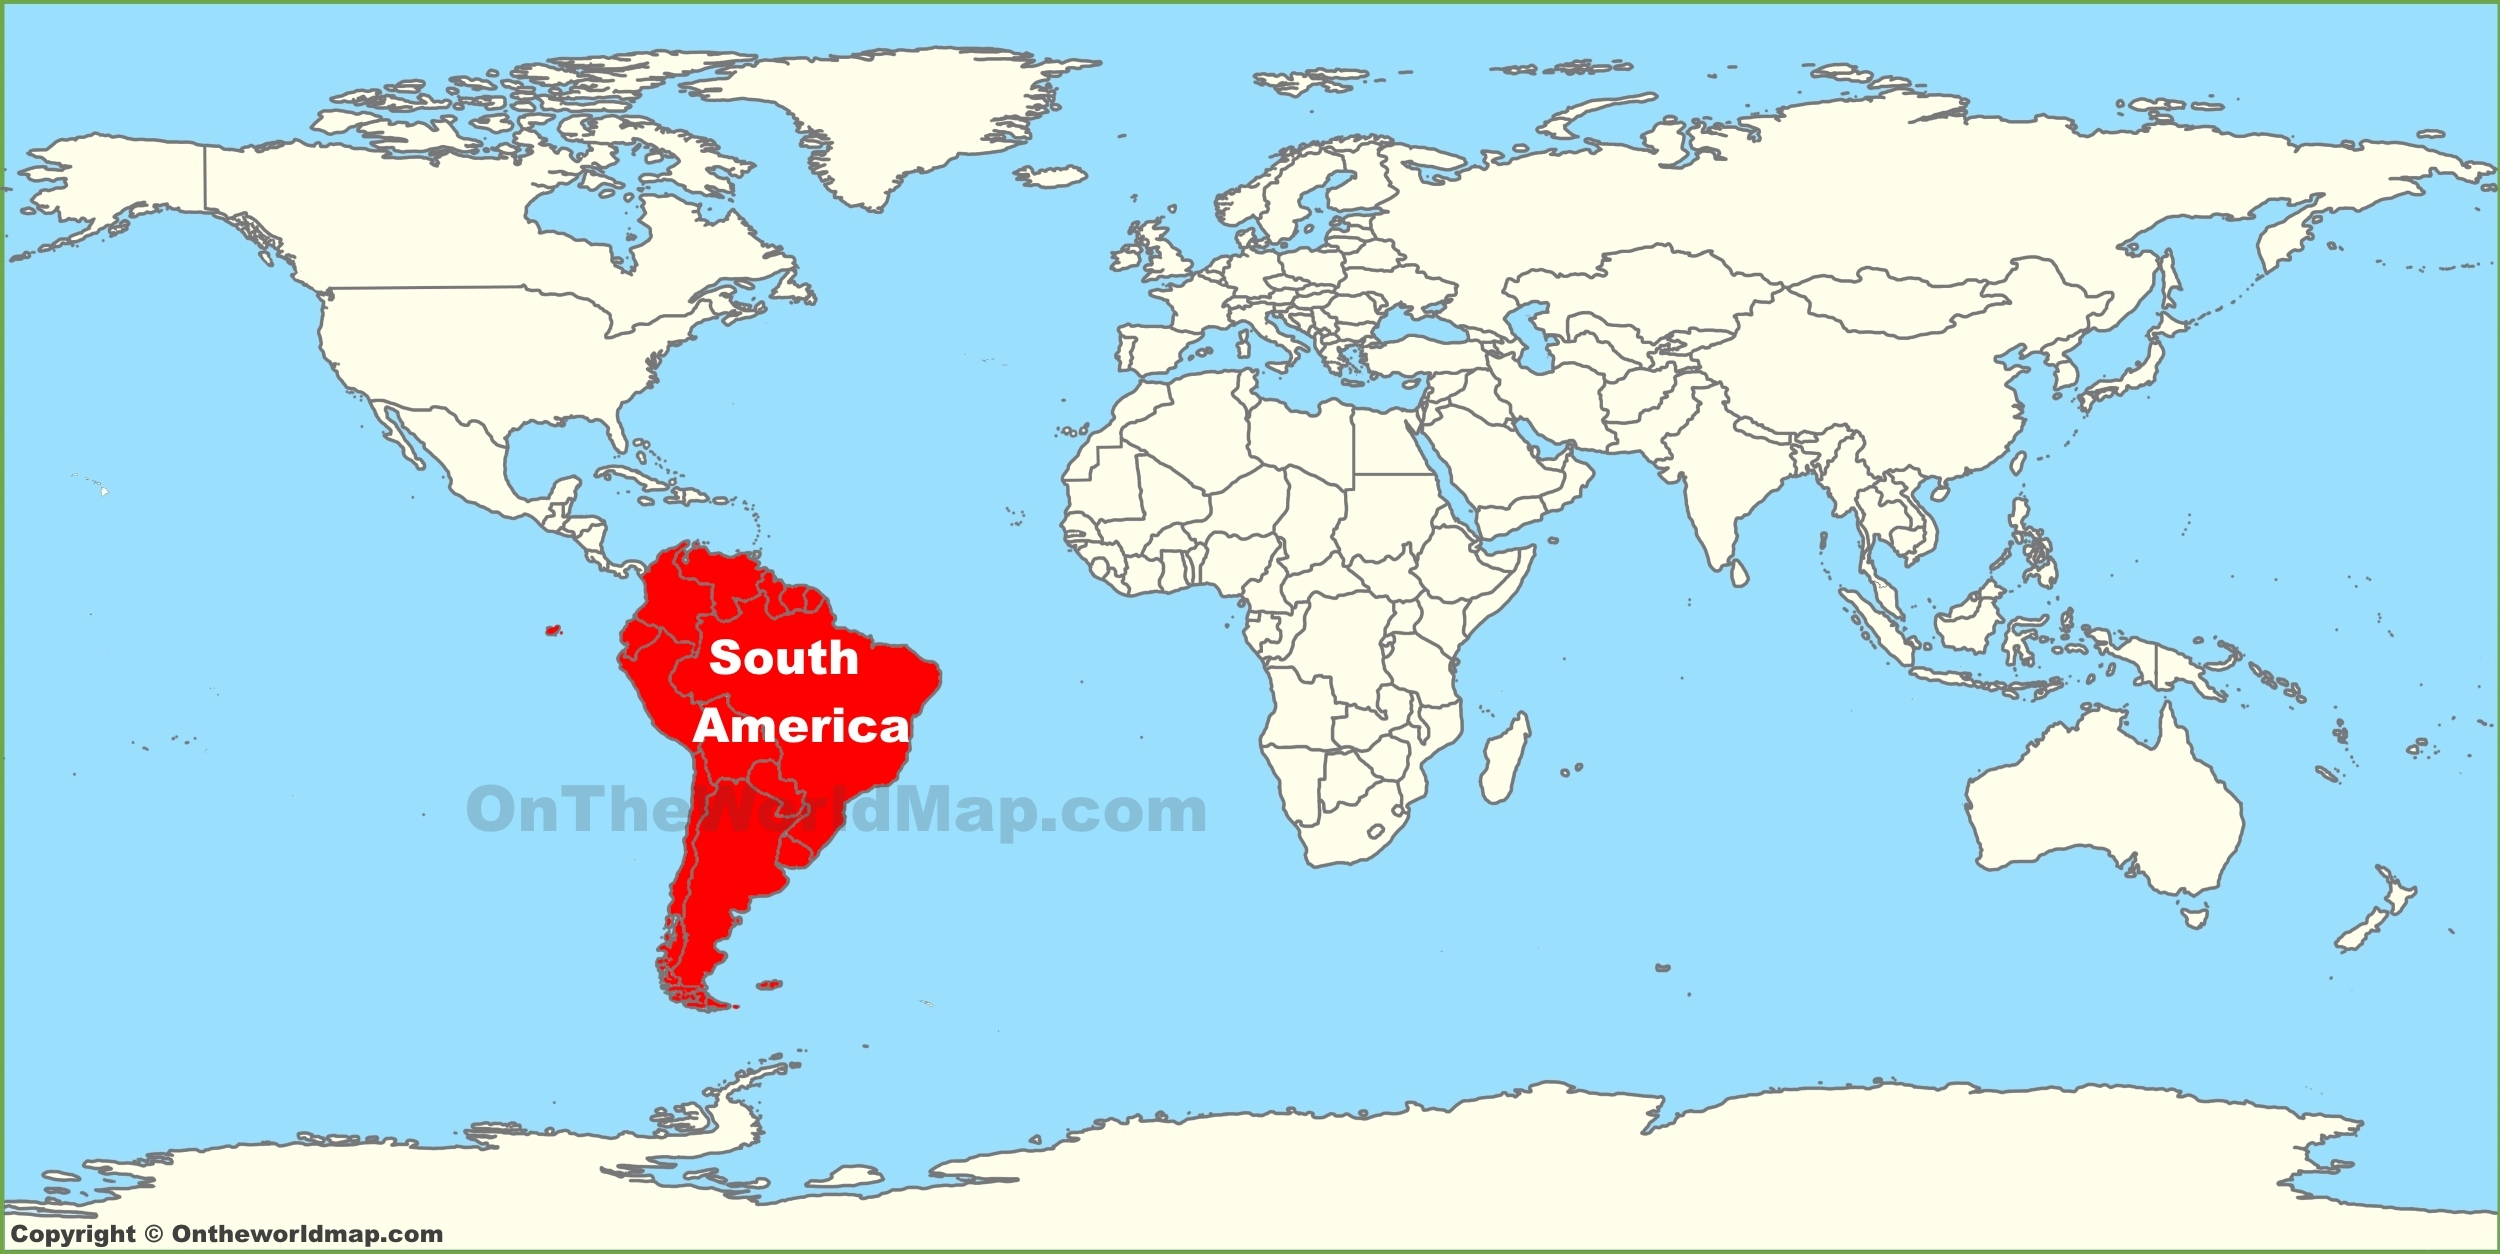 South america location on the world map south america location on the world map gumiabroncs